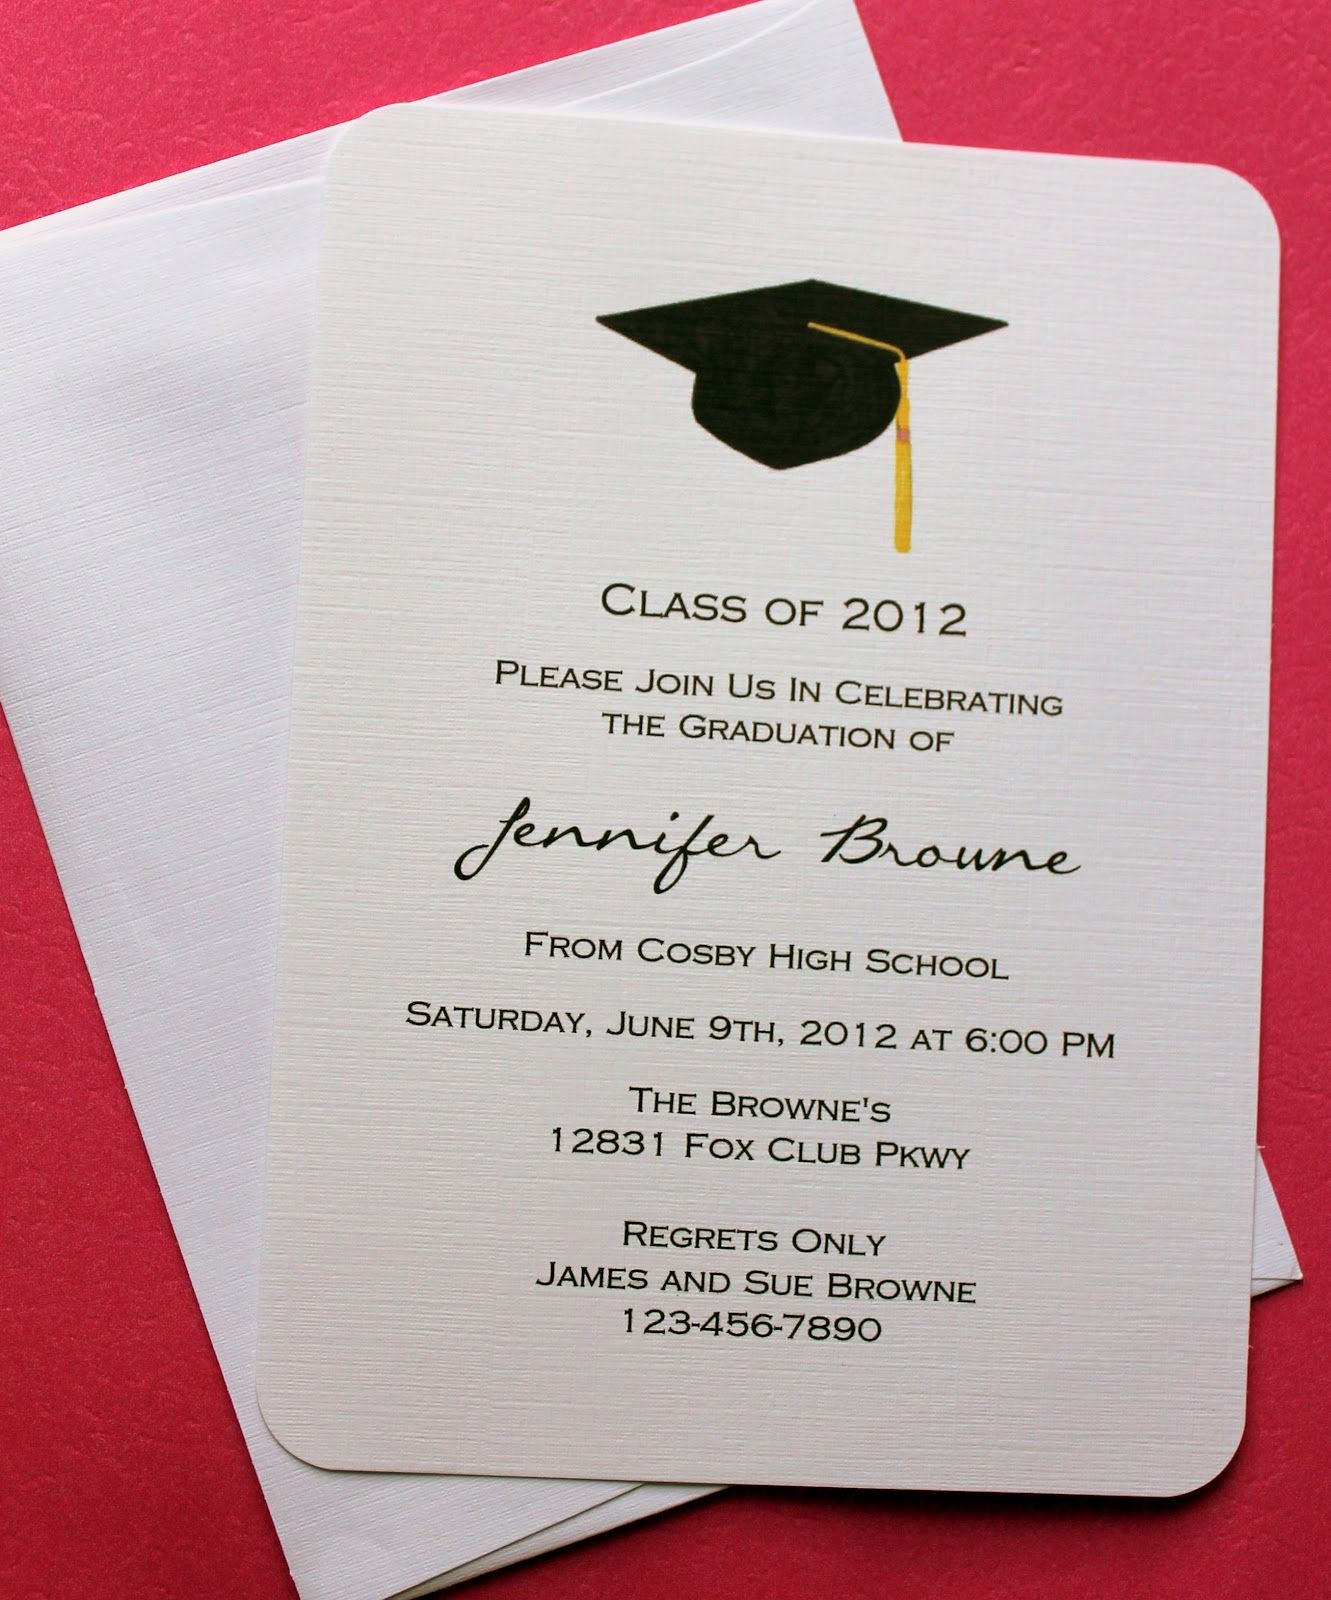 Collection of thousands of free Graduation Invitation Template – Create Graduation Invitations Online